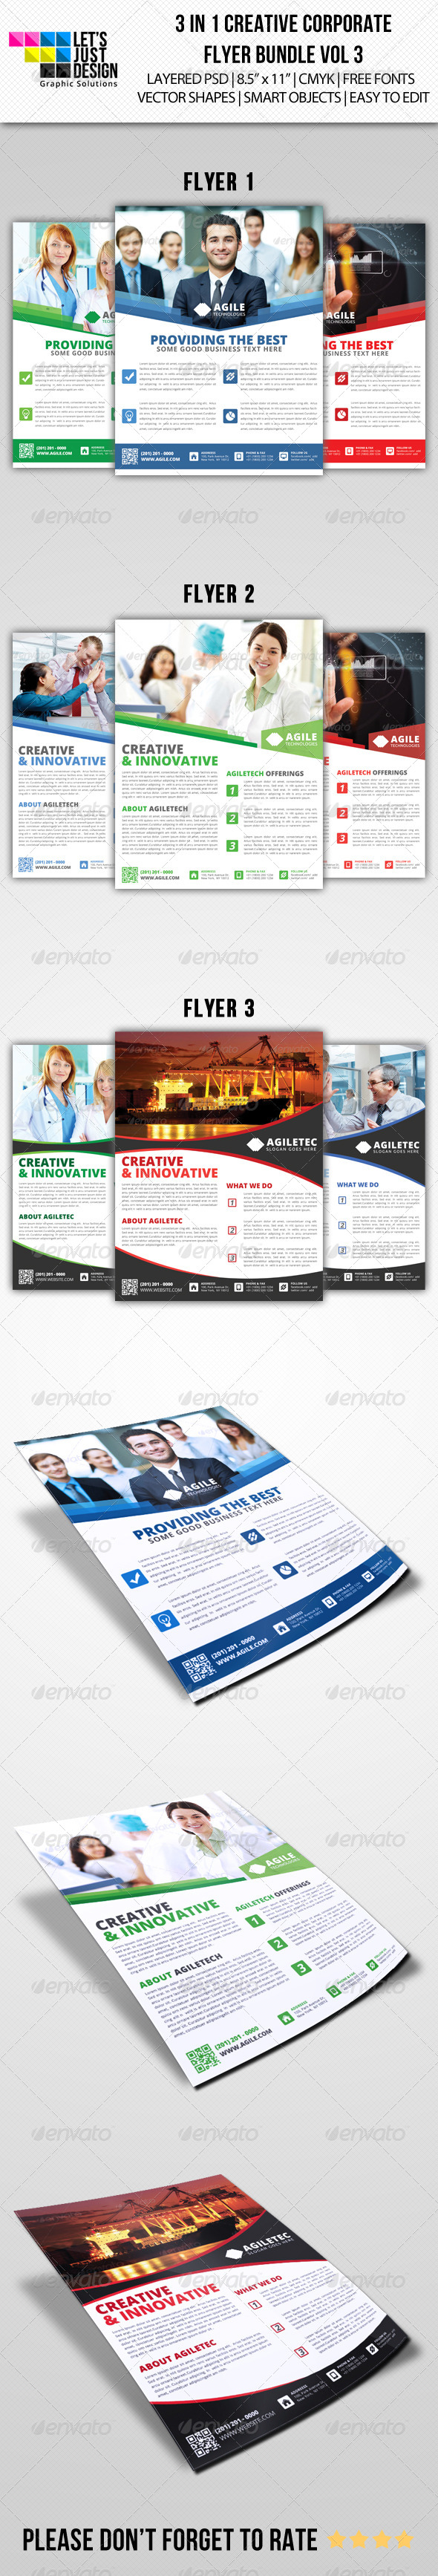 Creative Corporate Flyer Pack Vol 3 - Corporate Flyers